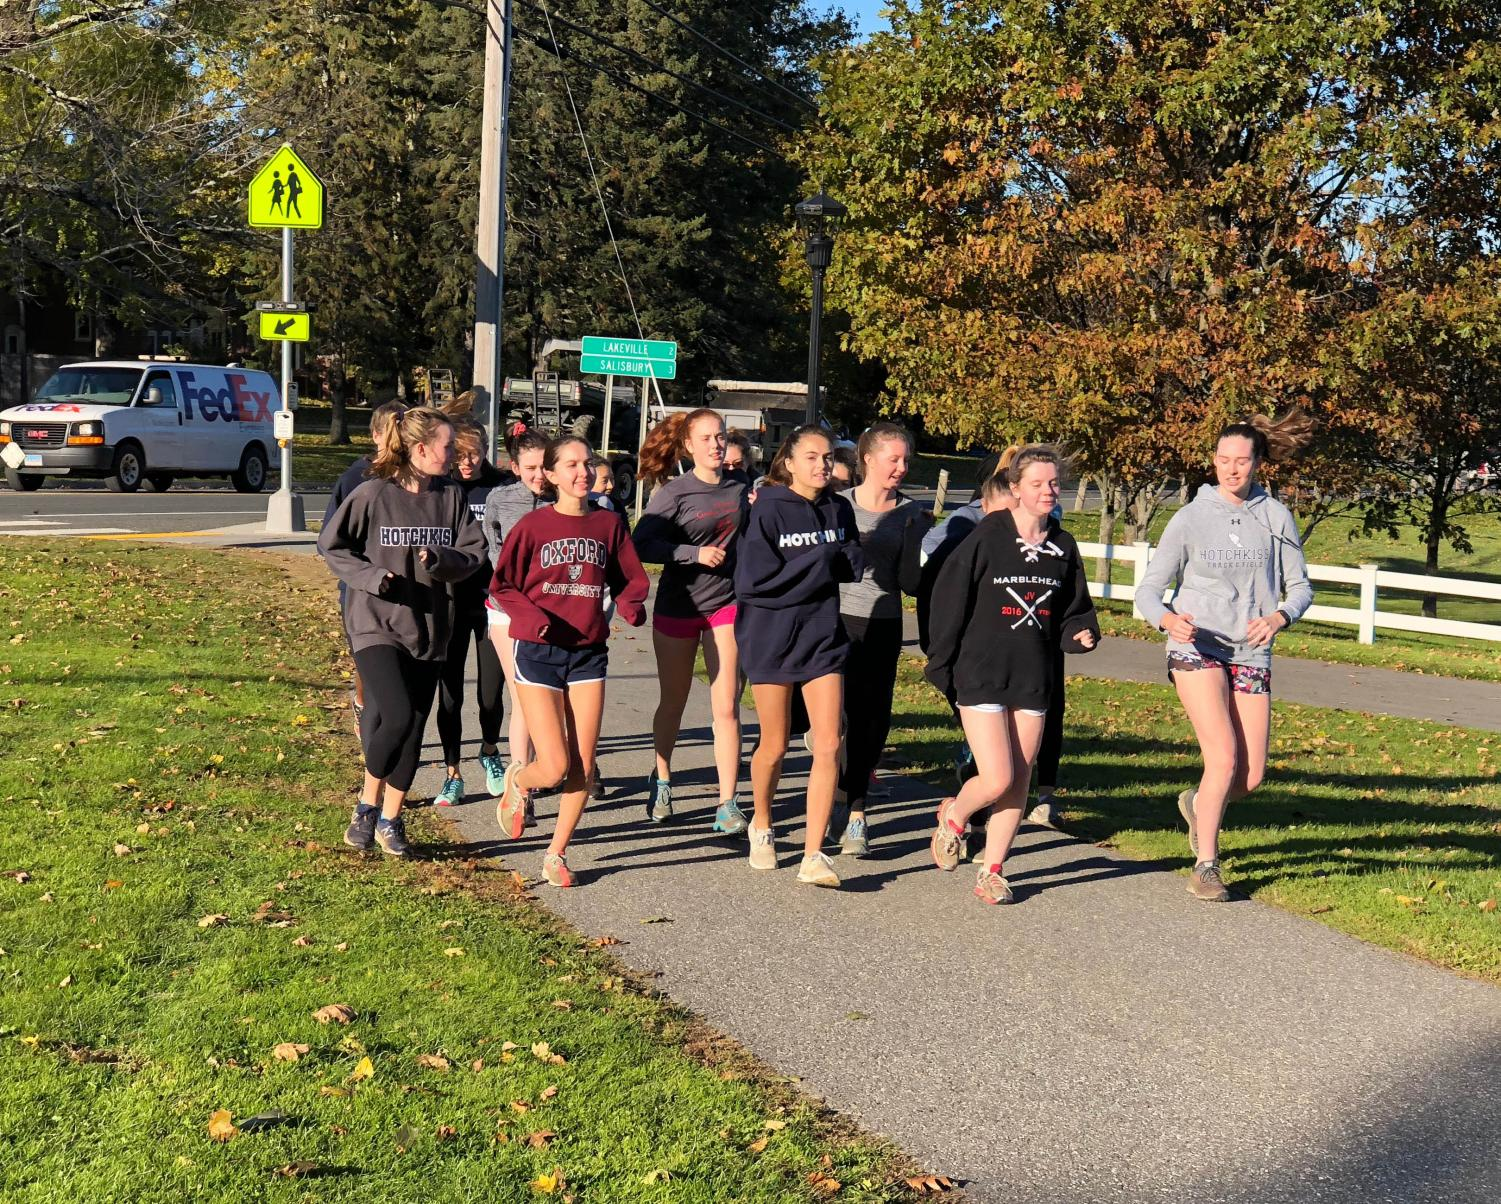 The Girl Cross Country team warms up.